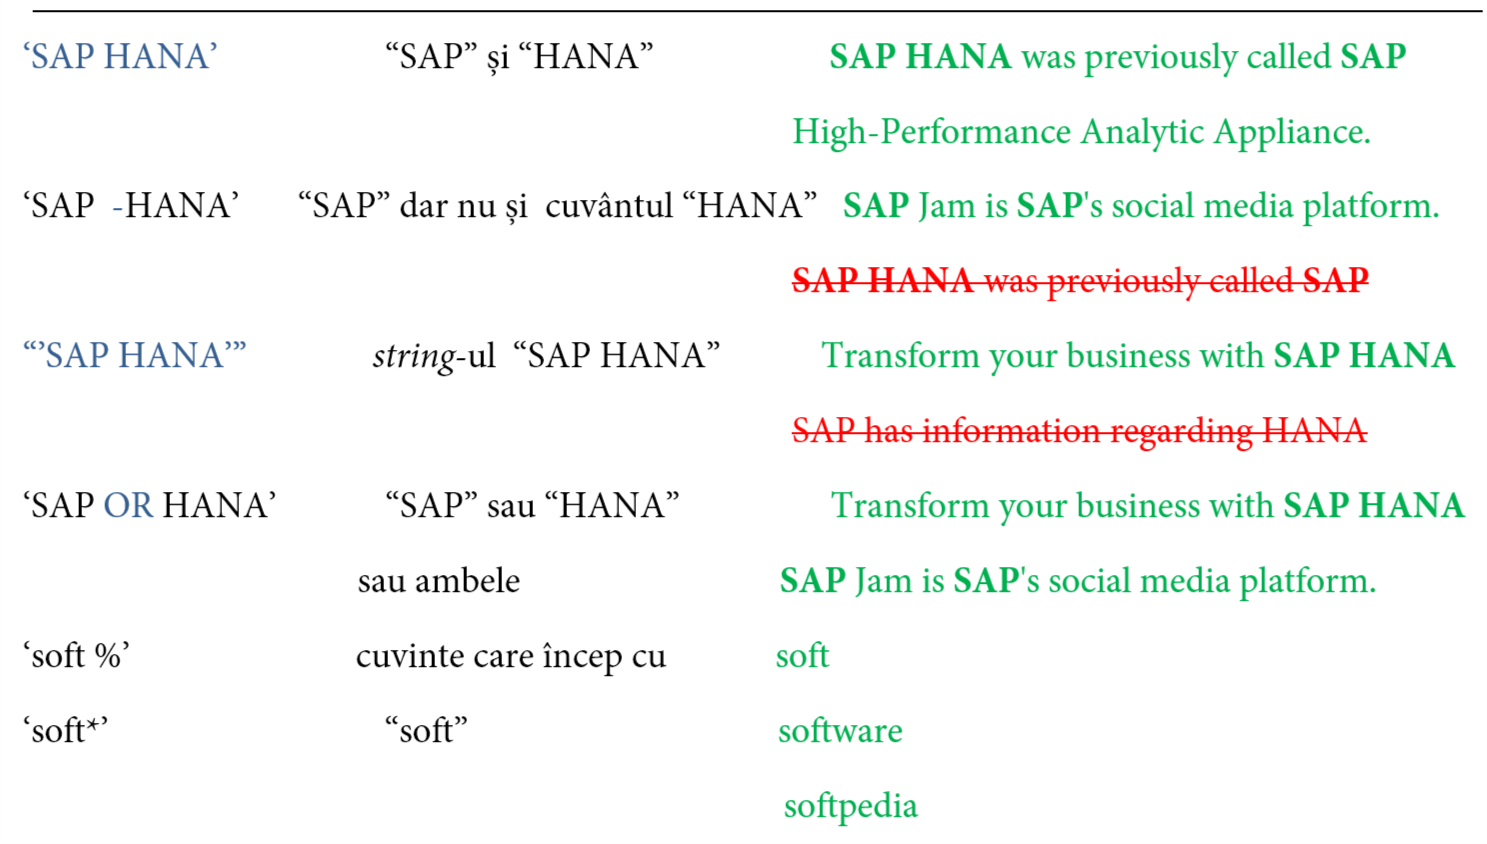 TSM - Text search and analysis in SAP HANA